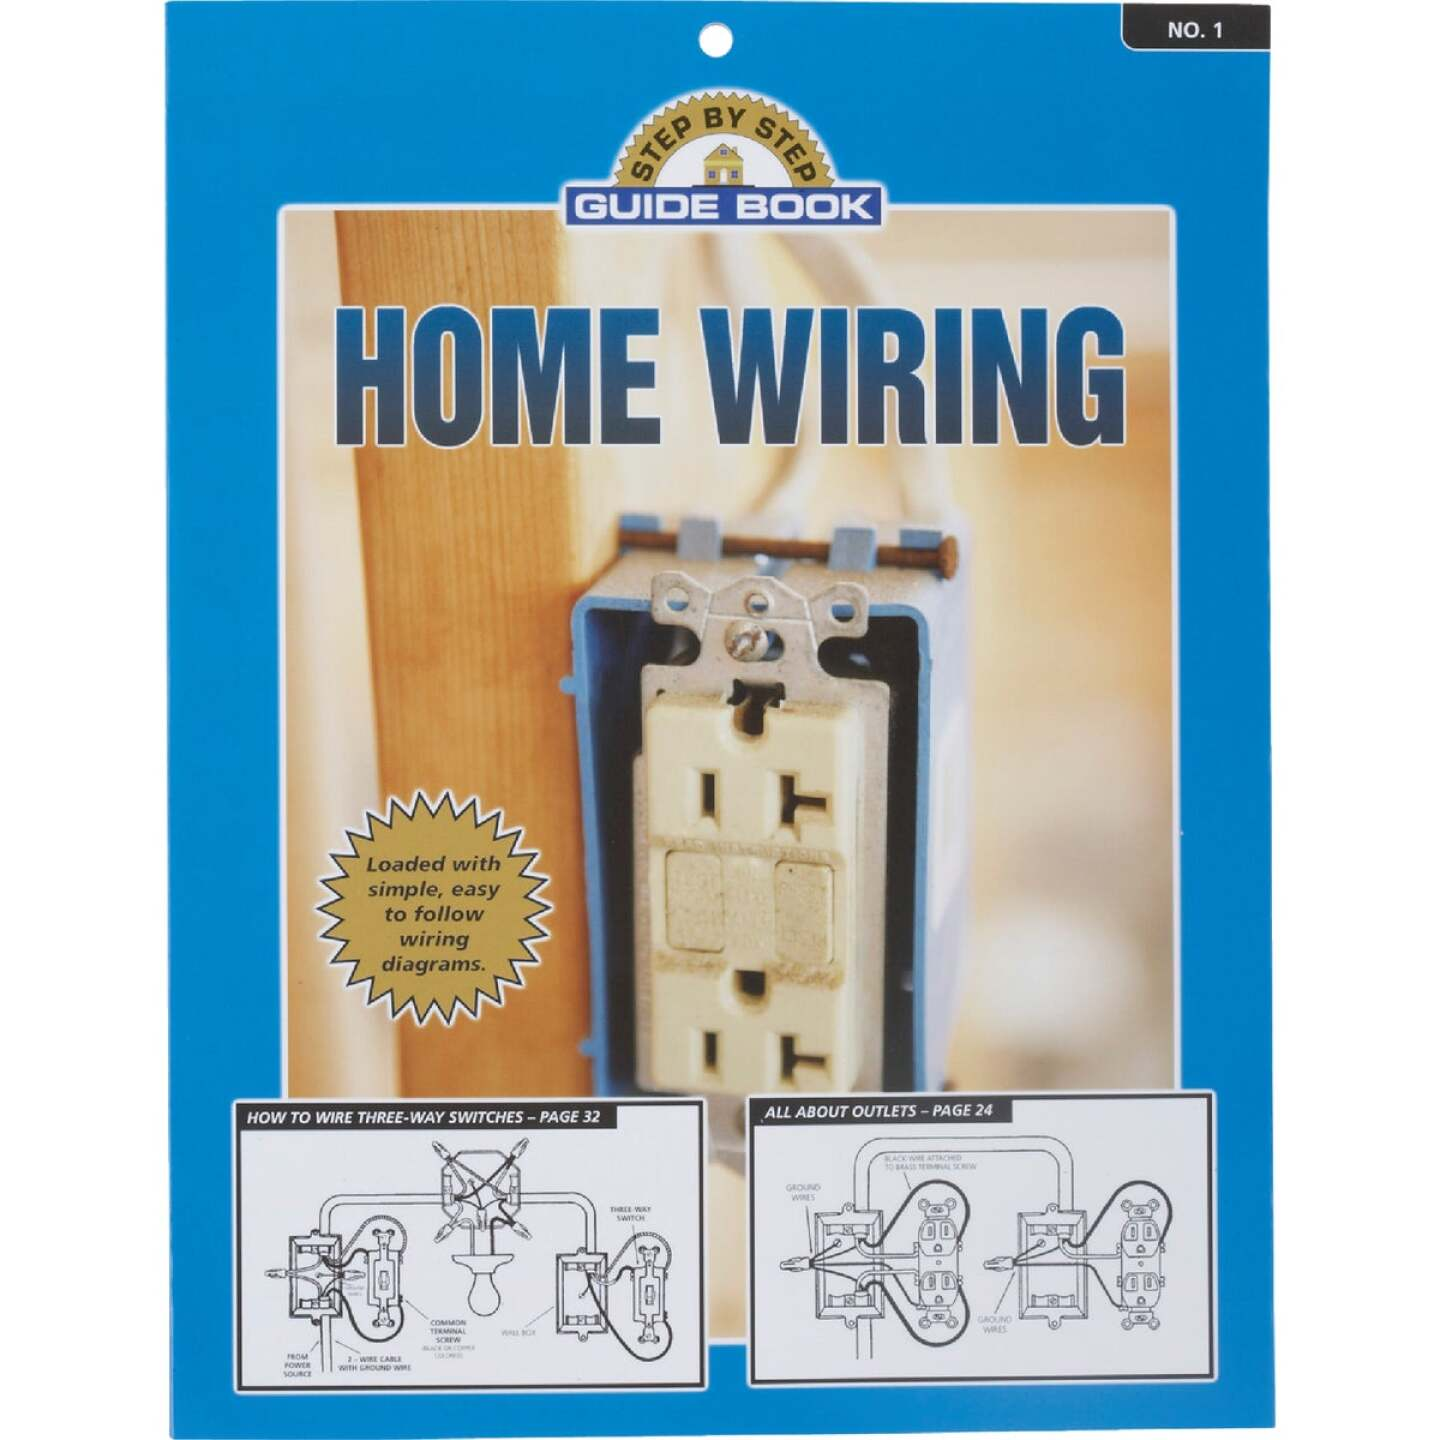 Step by Step Guide Home Wiring Manual Paperback Book Image 1